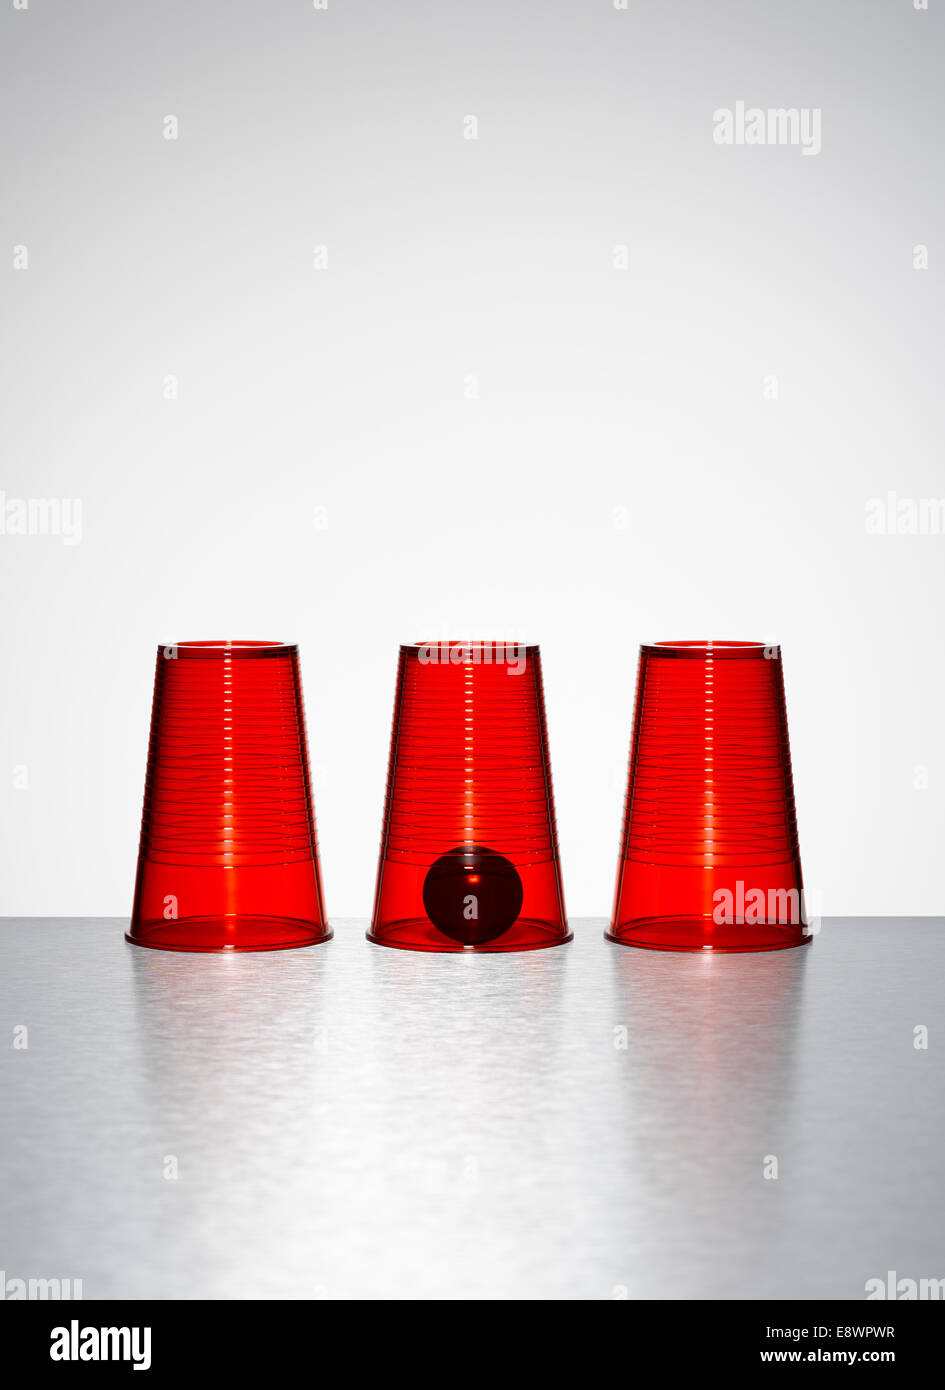 Ball under middle of three clear red cups Stock Photo